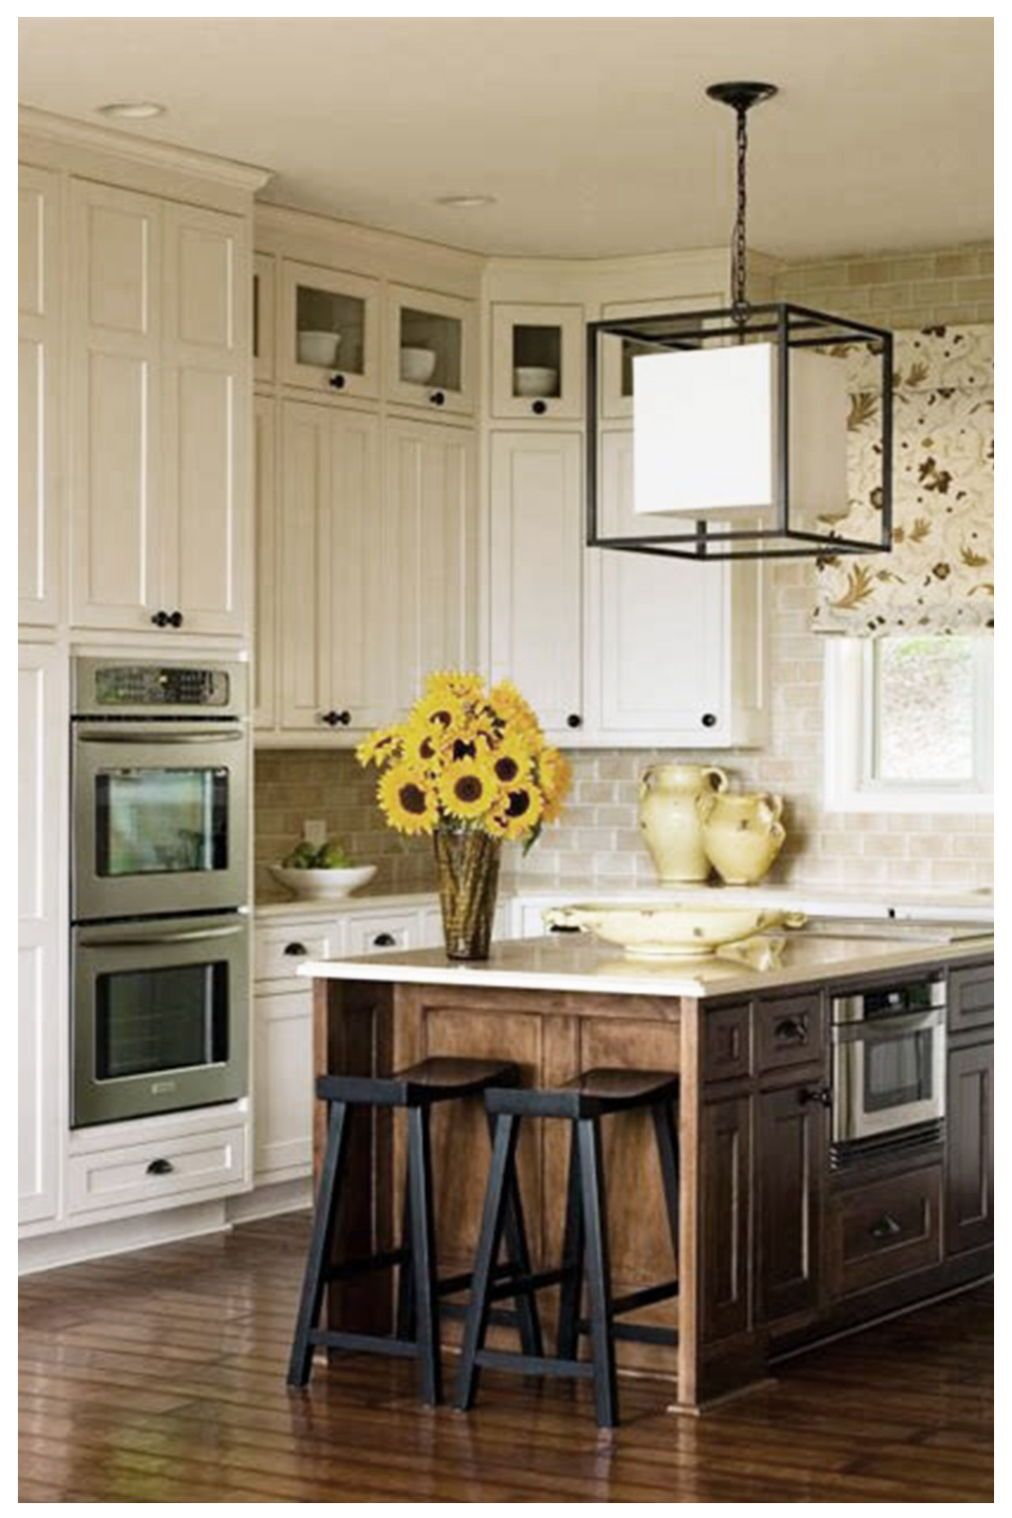 20 Innovative Kitchen Remodel Ideas Before And After For 2020 Remodel Tips In 2020 Refacing Kitchen Cabinets Replacing Kitchen Cabinets Resurfacing Kitchen Cabinets